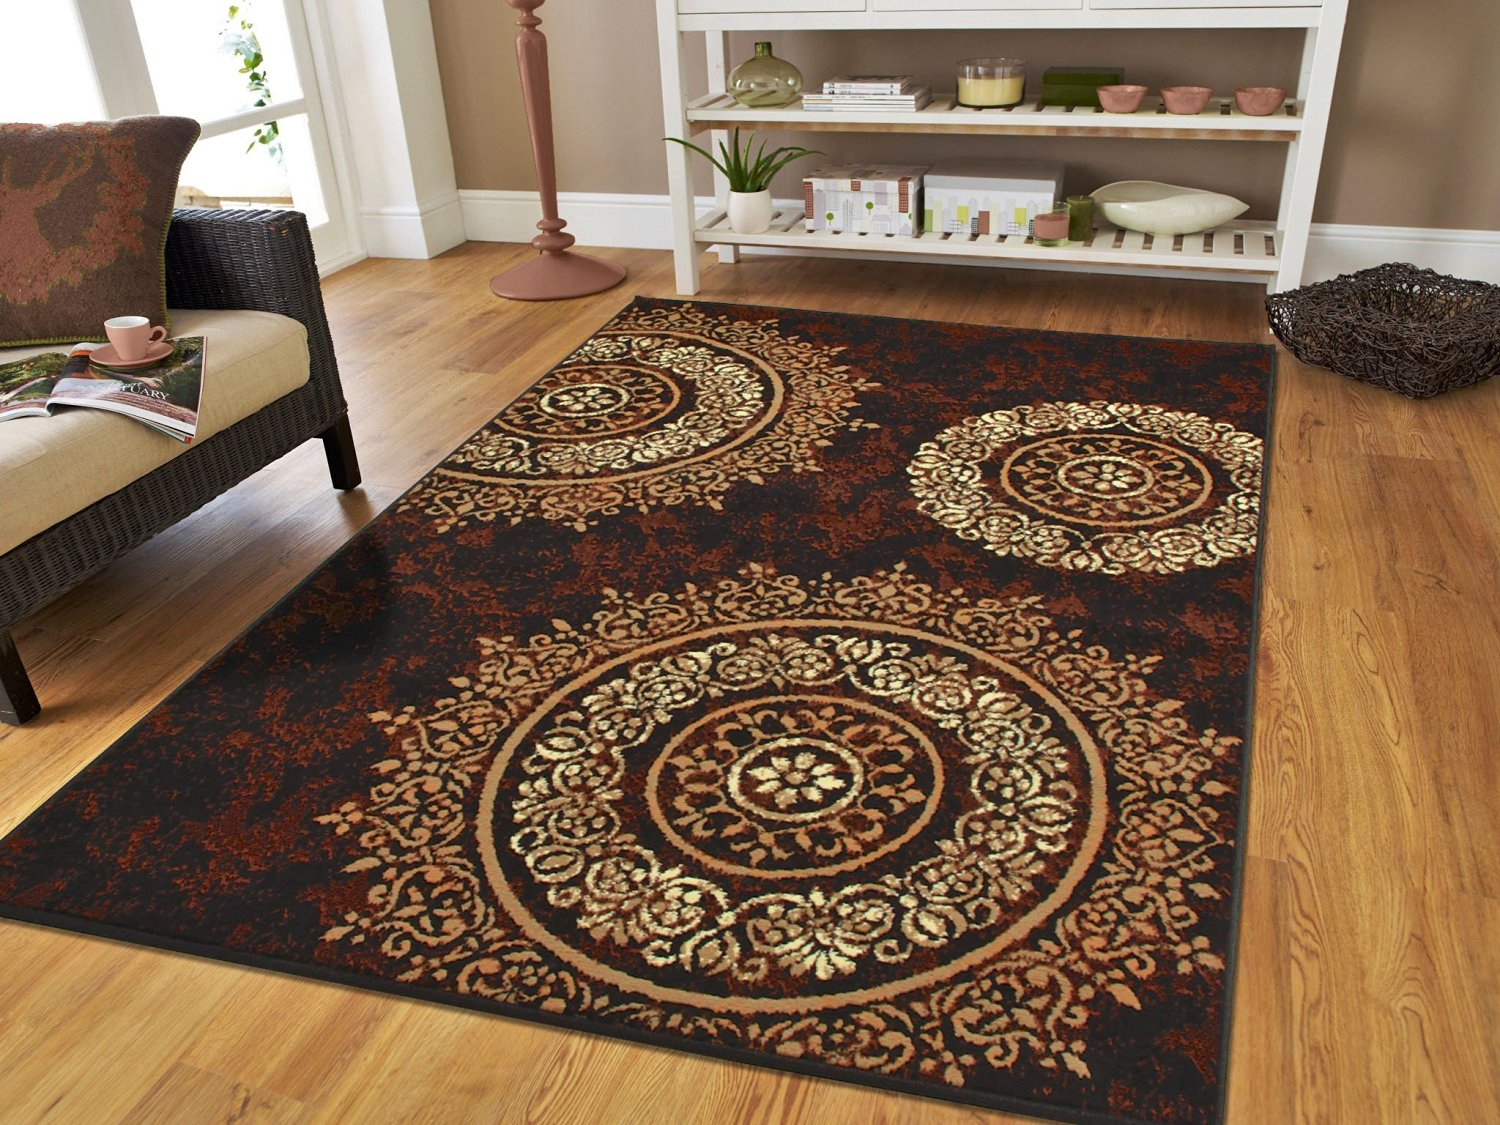 2x3 kitchen rug japanese knives cheap rugs find deals on line at get quotations luxury century brand new contemporary brown and beige modern circles area 2 x3